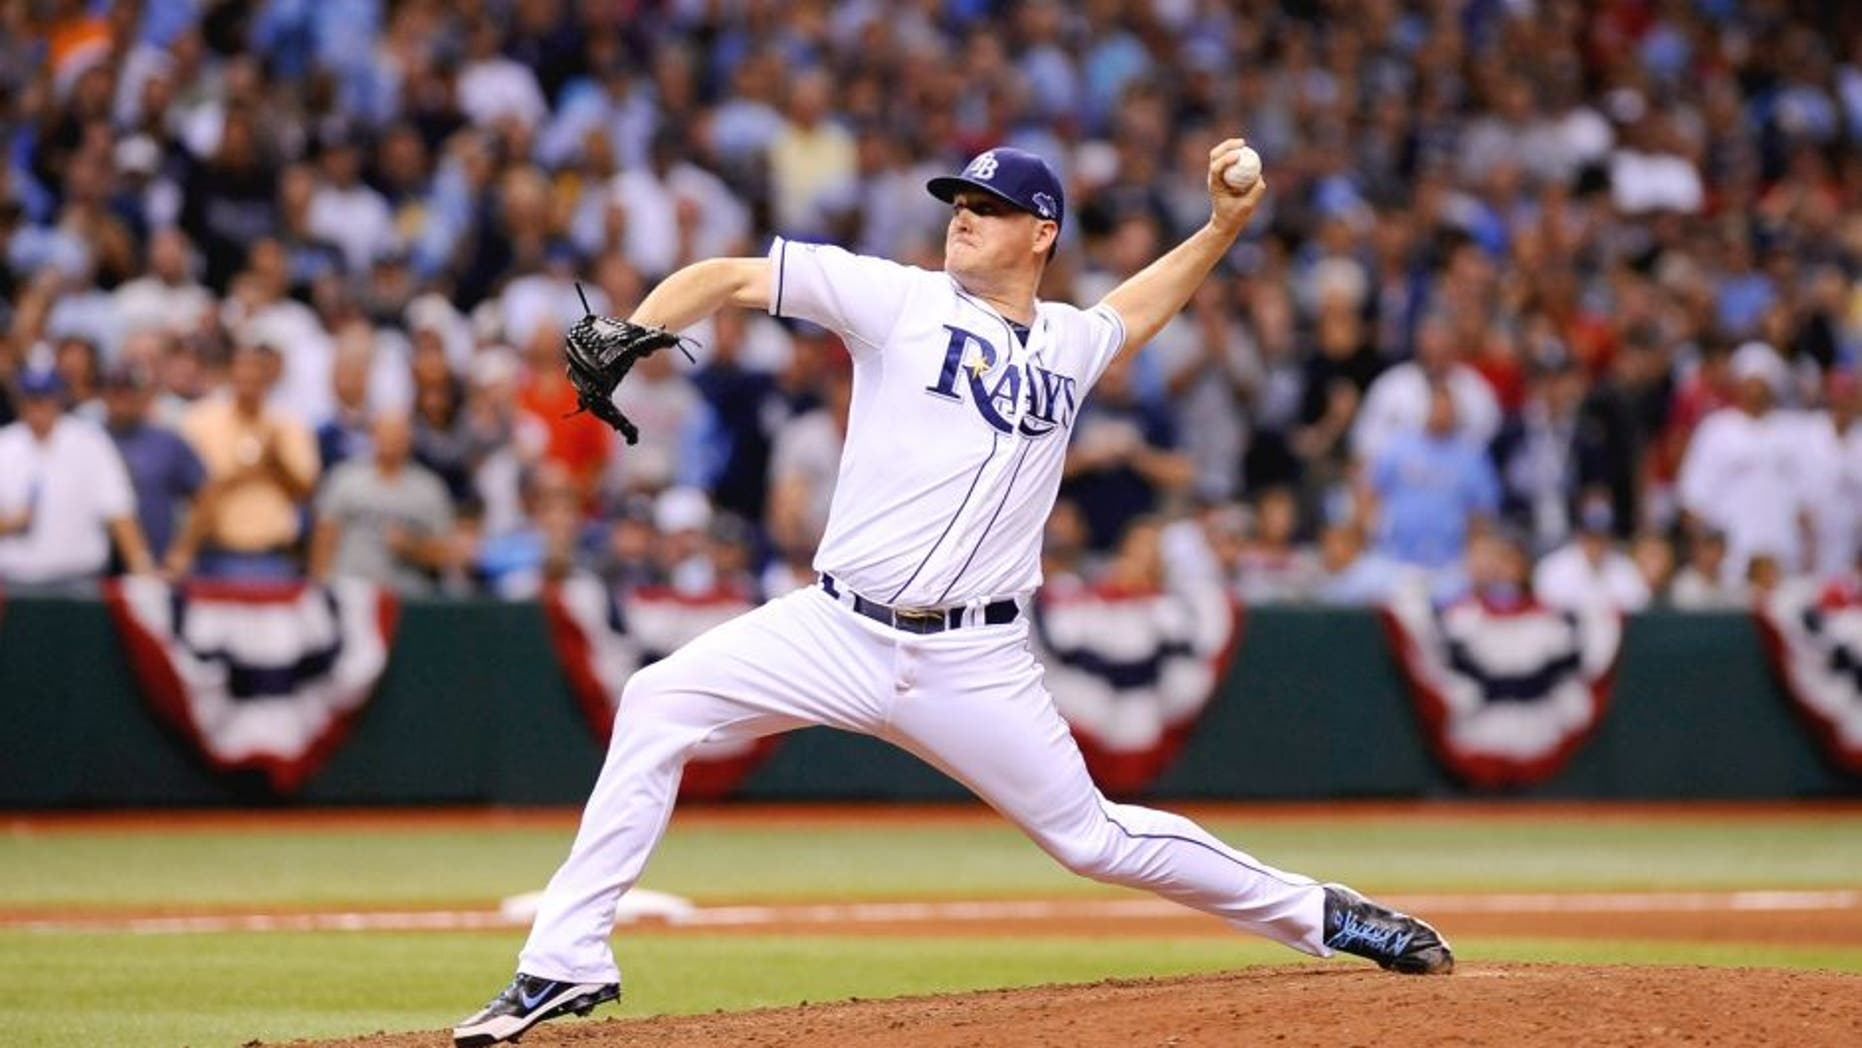 ST PETERSBURG, FL - OCTOBER 07: Jake McGee #57 of the Tampa Bay Rays pitches in the eighth inning against the Boston Red Sox during Game Three of the American League Division Series at Tropicana Field on October 7, 2013 in St Petersburg, Florida. (Photo by Brian Blanco/Getty Images)